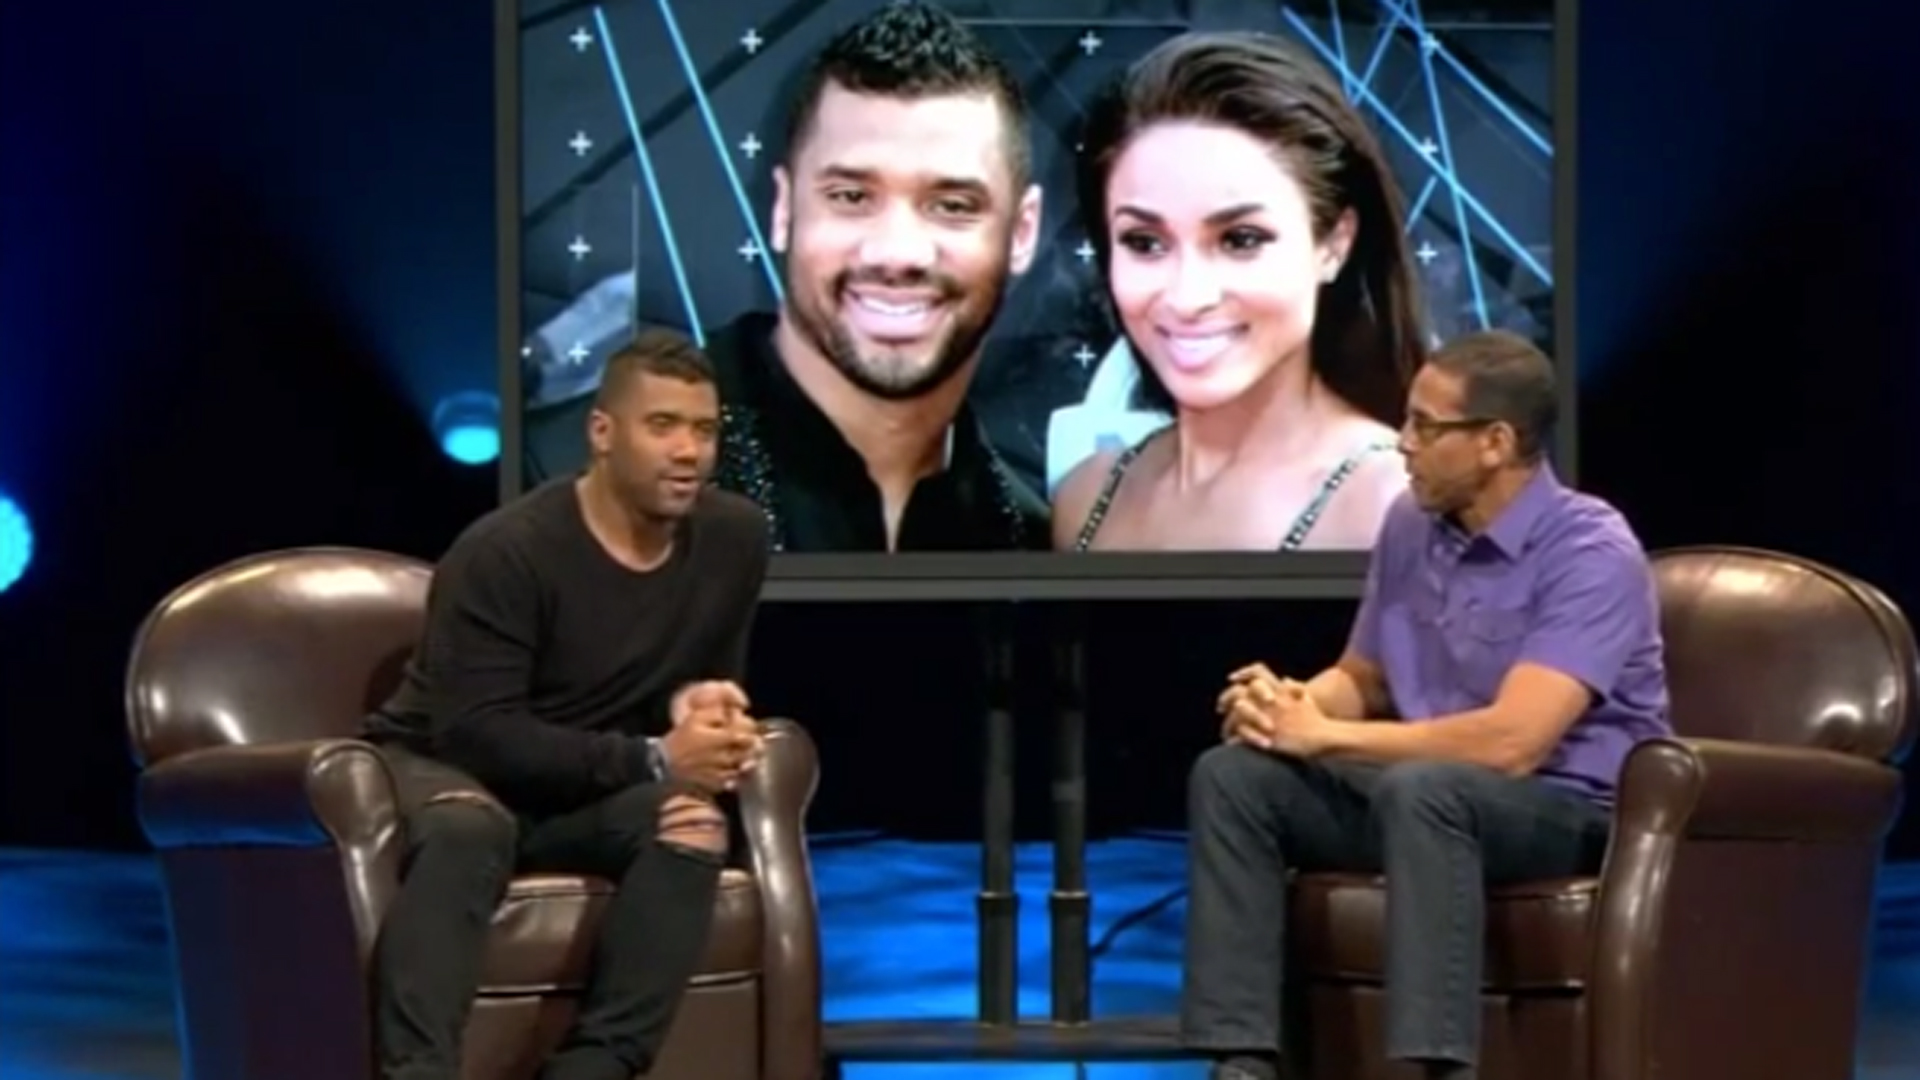 Russell Wilson says he and Ciara will practice abstinence until marriage